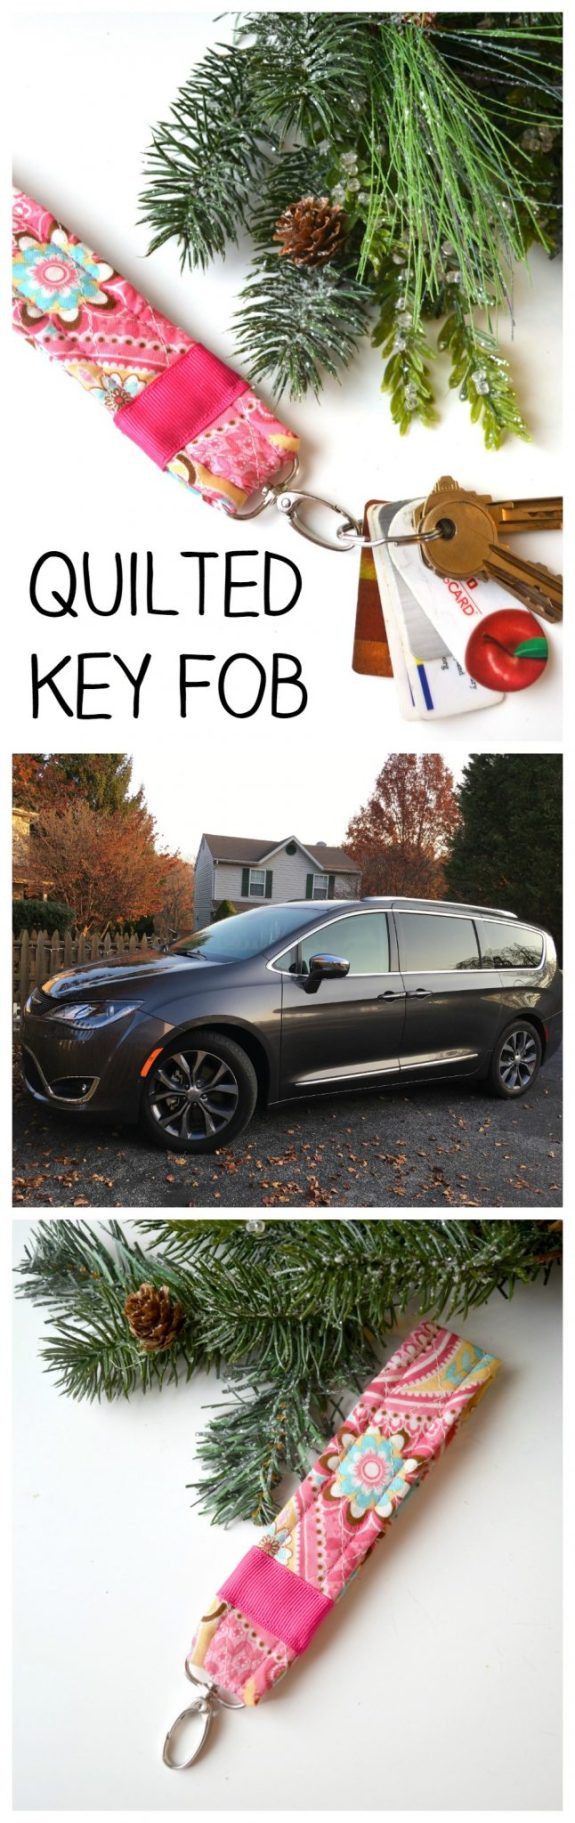 Quilted Key Fob & Chrysler Pacifica